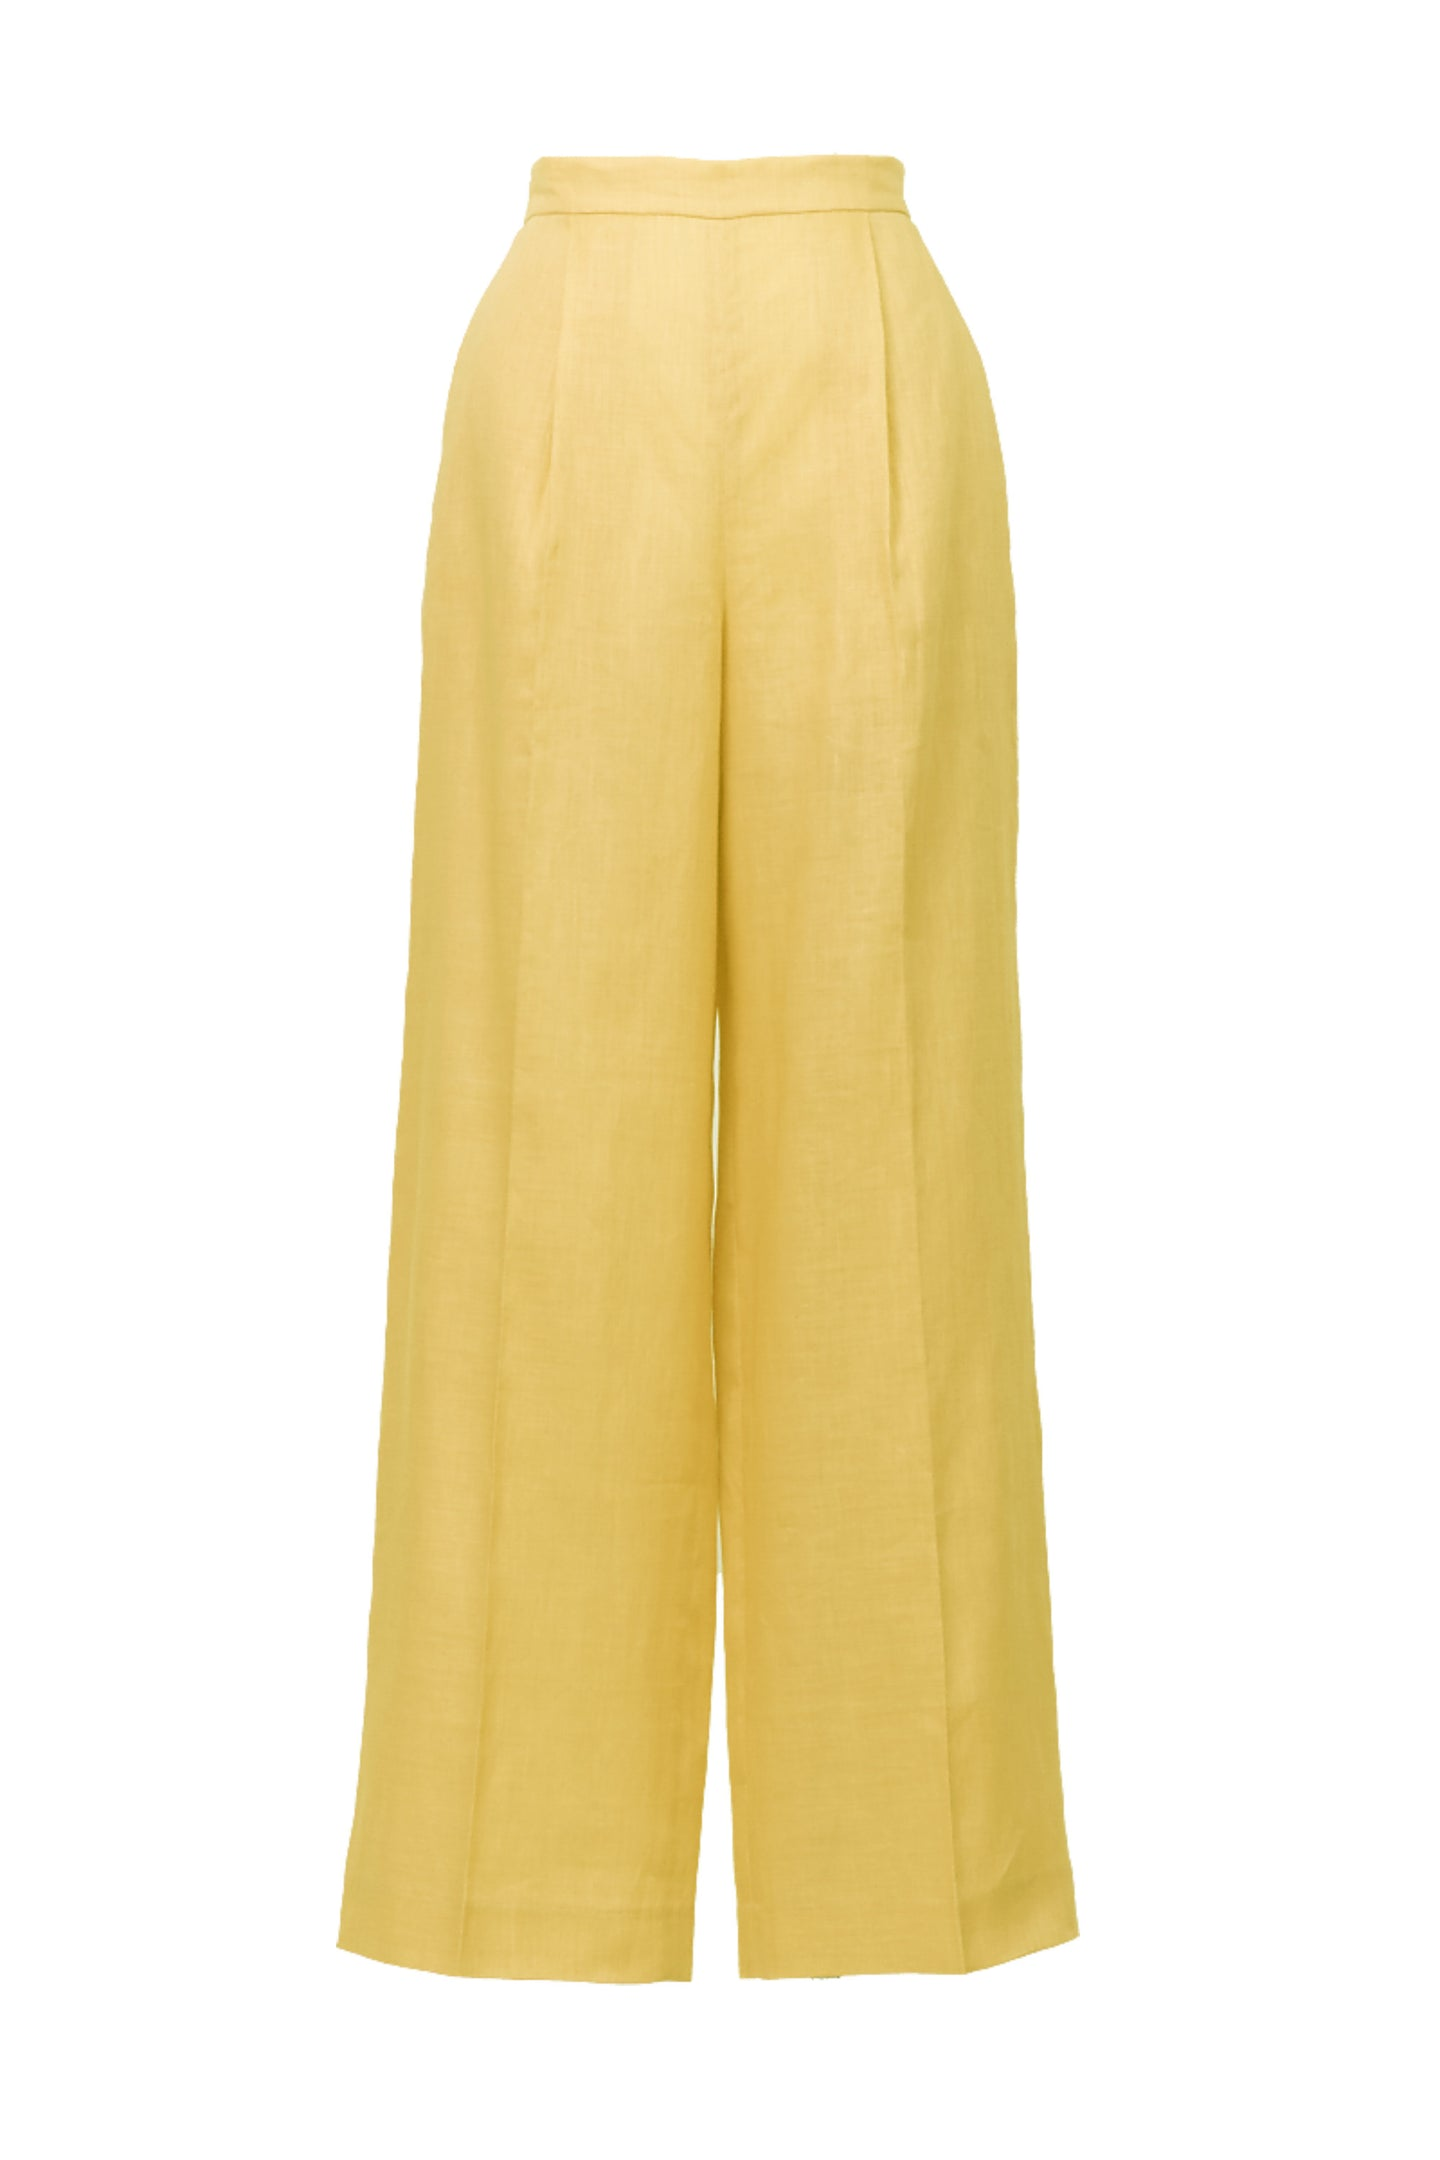 Botanical Dye Separate Pants | Peony Citrine